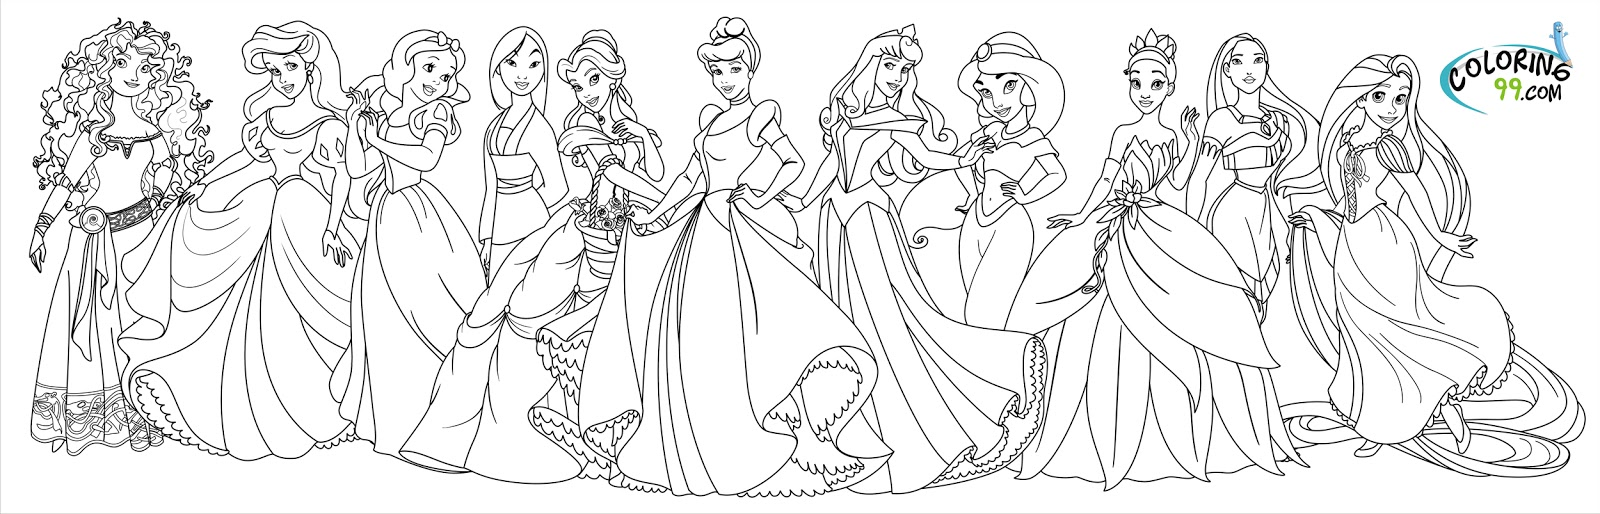 fans request disney princess with merida from brave coloring pages minister coloring